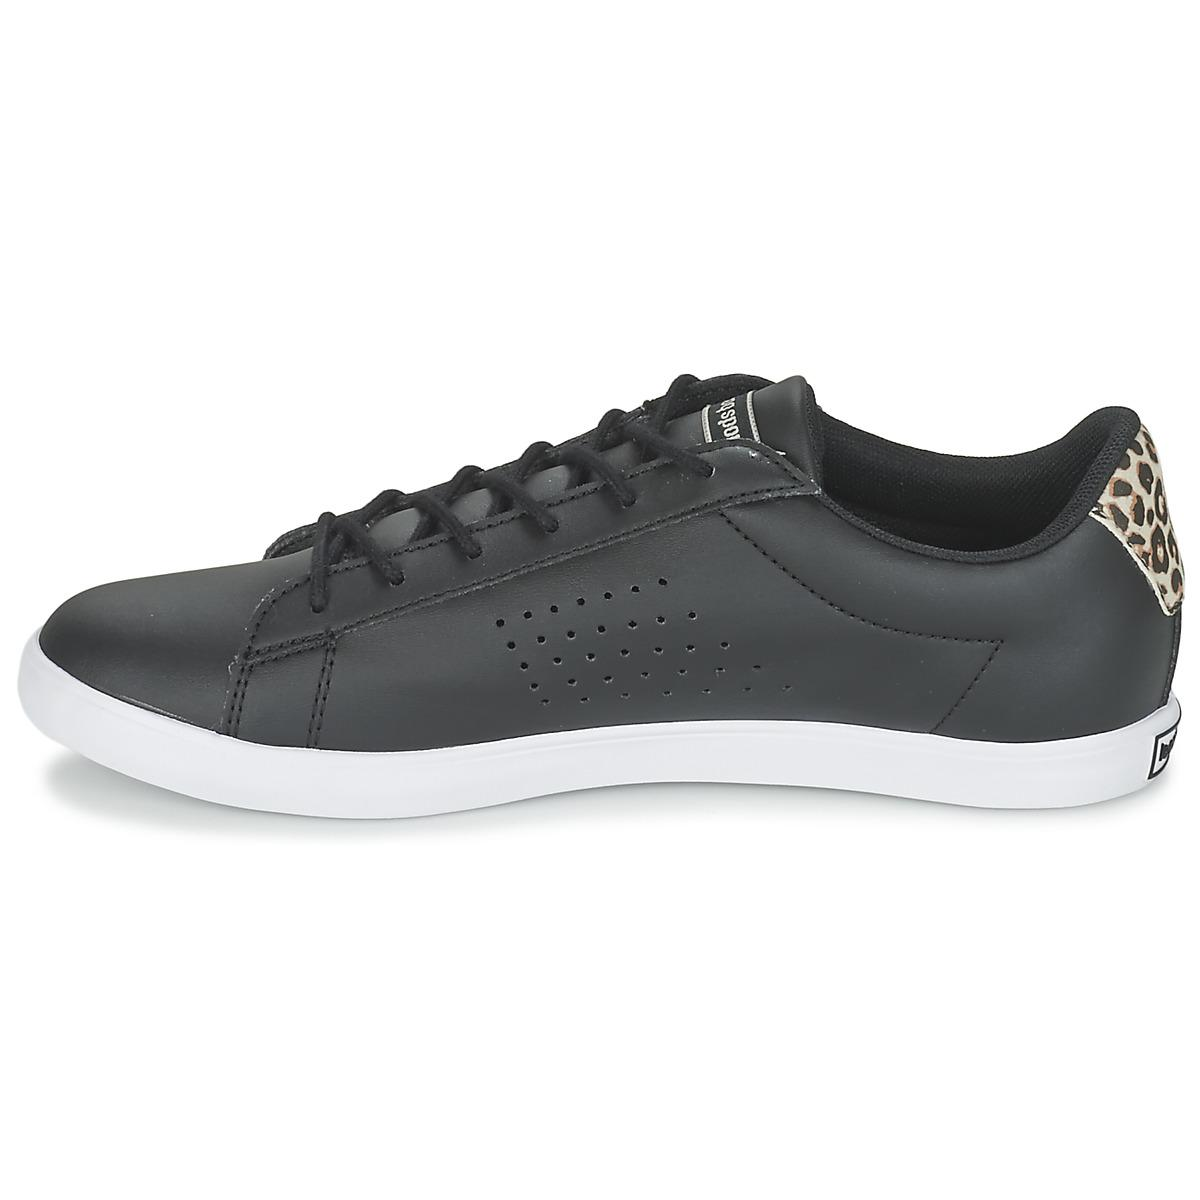 Le Coq Sportif Synthetic Dynacomf W Feminine Mesh Women's Shoes (trainers) In Black